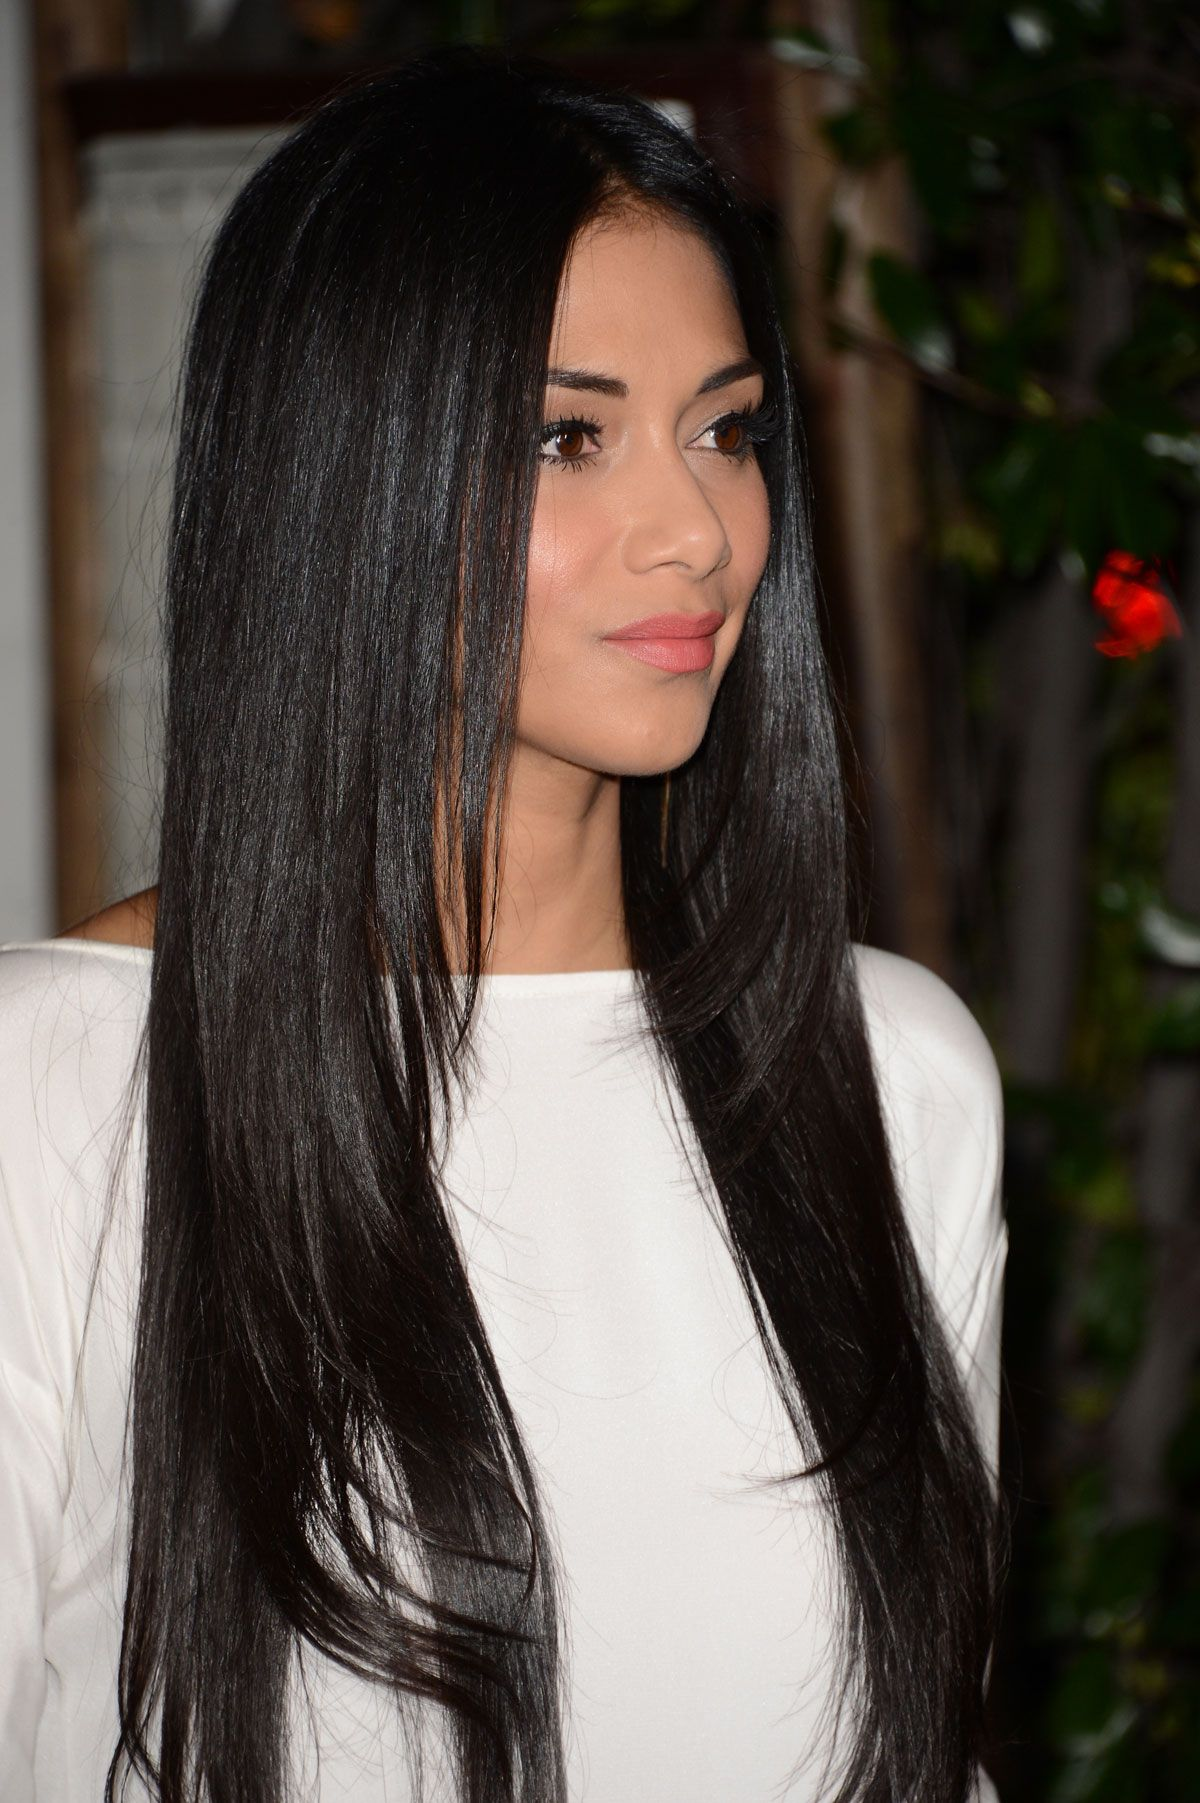 Really Long Hair Hairstyles Nicole Scherzinger New Hairstyle 2014 For Long Hair Hairnext